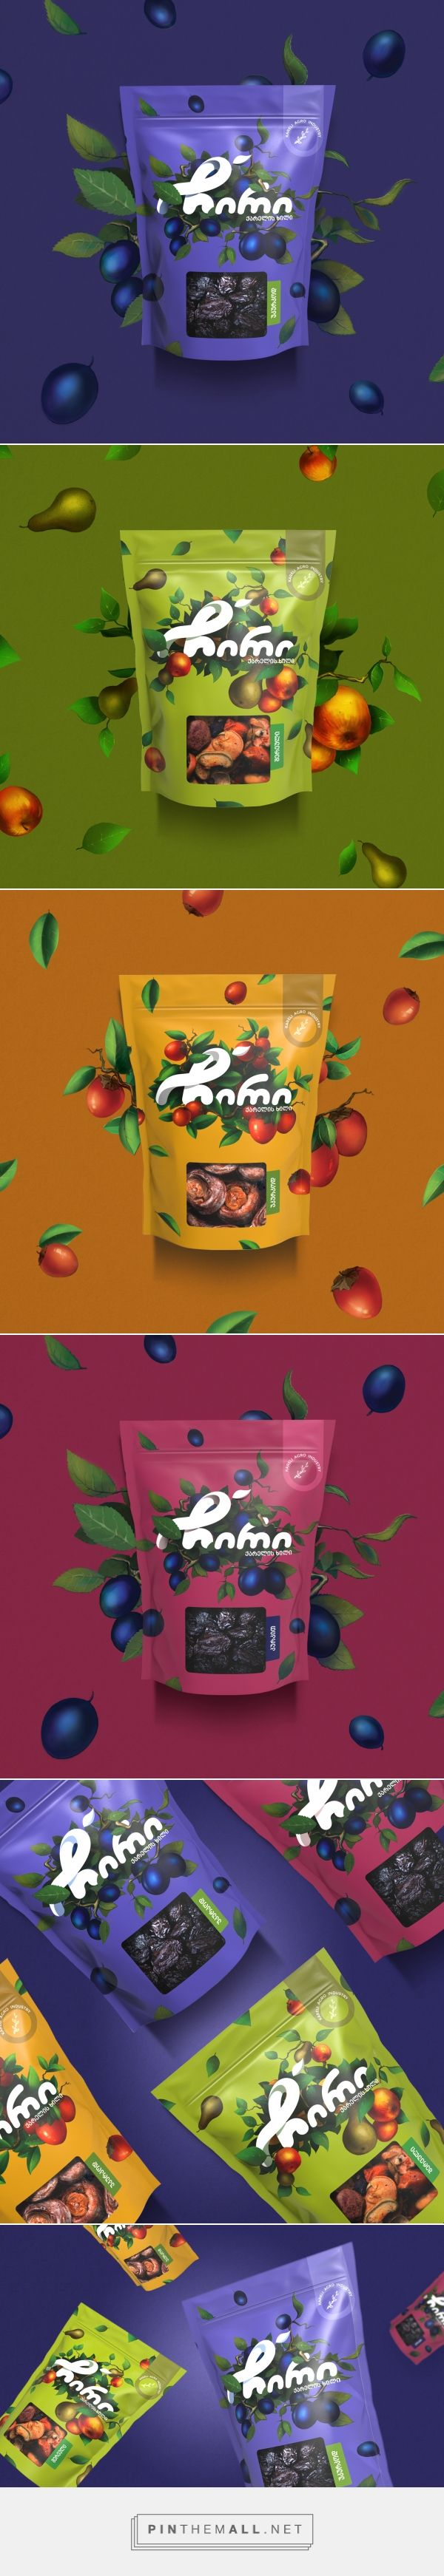 Chiri Dried Fruits Snacks - Packaging of the World - Creative Package Design Gallery - http://www.packagingoftheworld.com/2016/10/chiri-dried-fruits.html